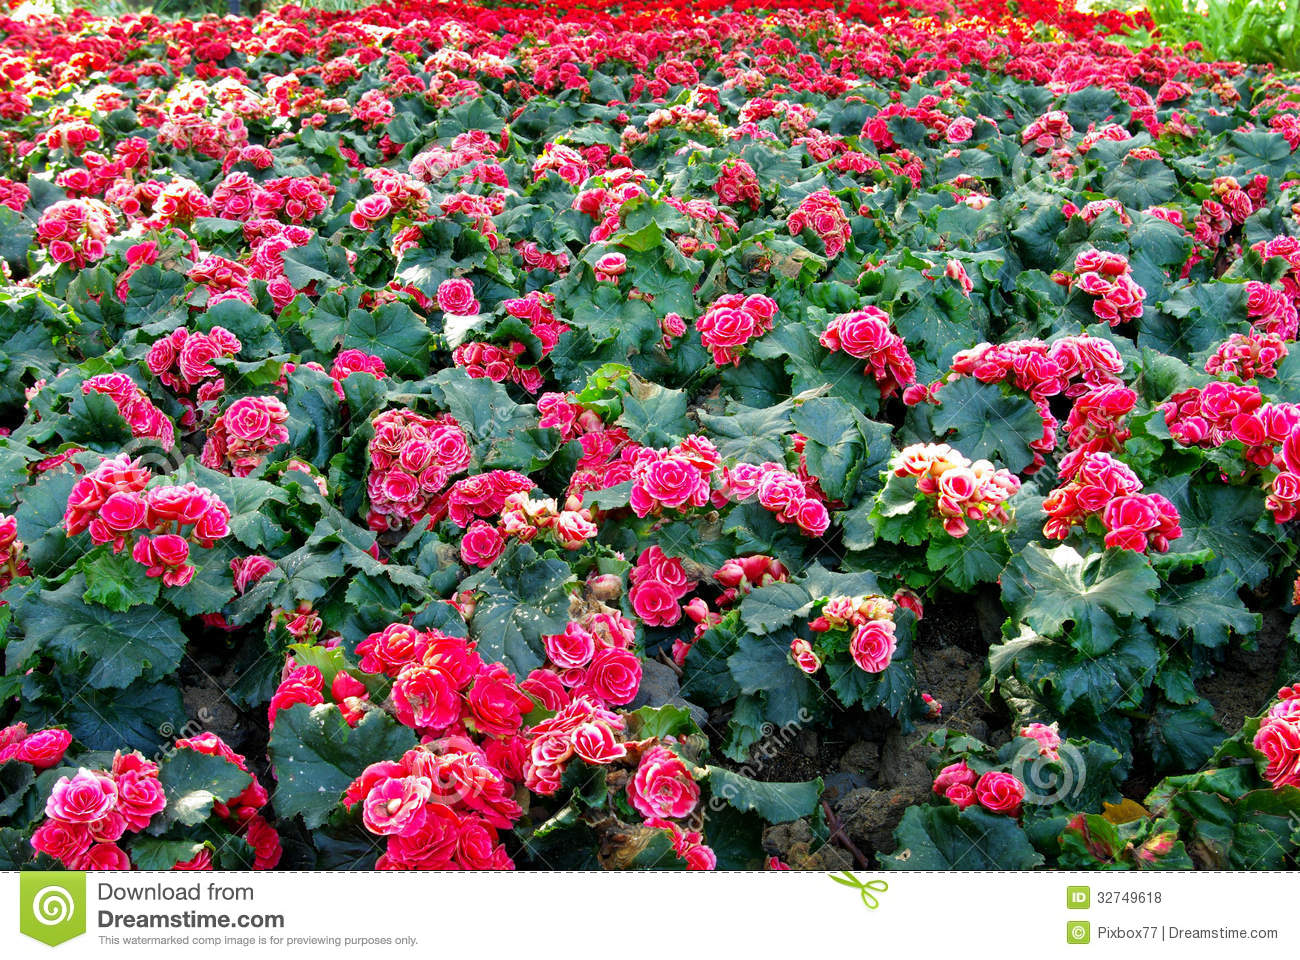 Nice Pink Flower In Garden Stock Photo. Image Of